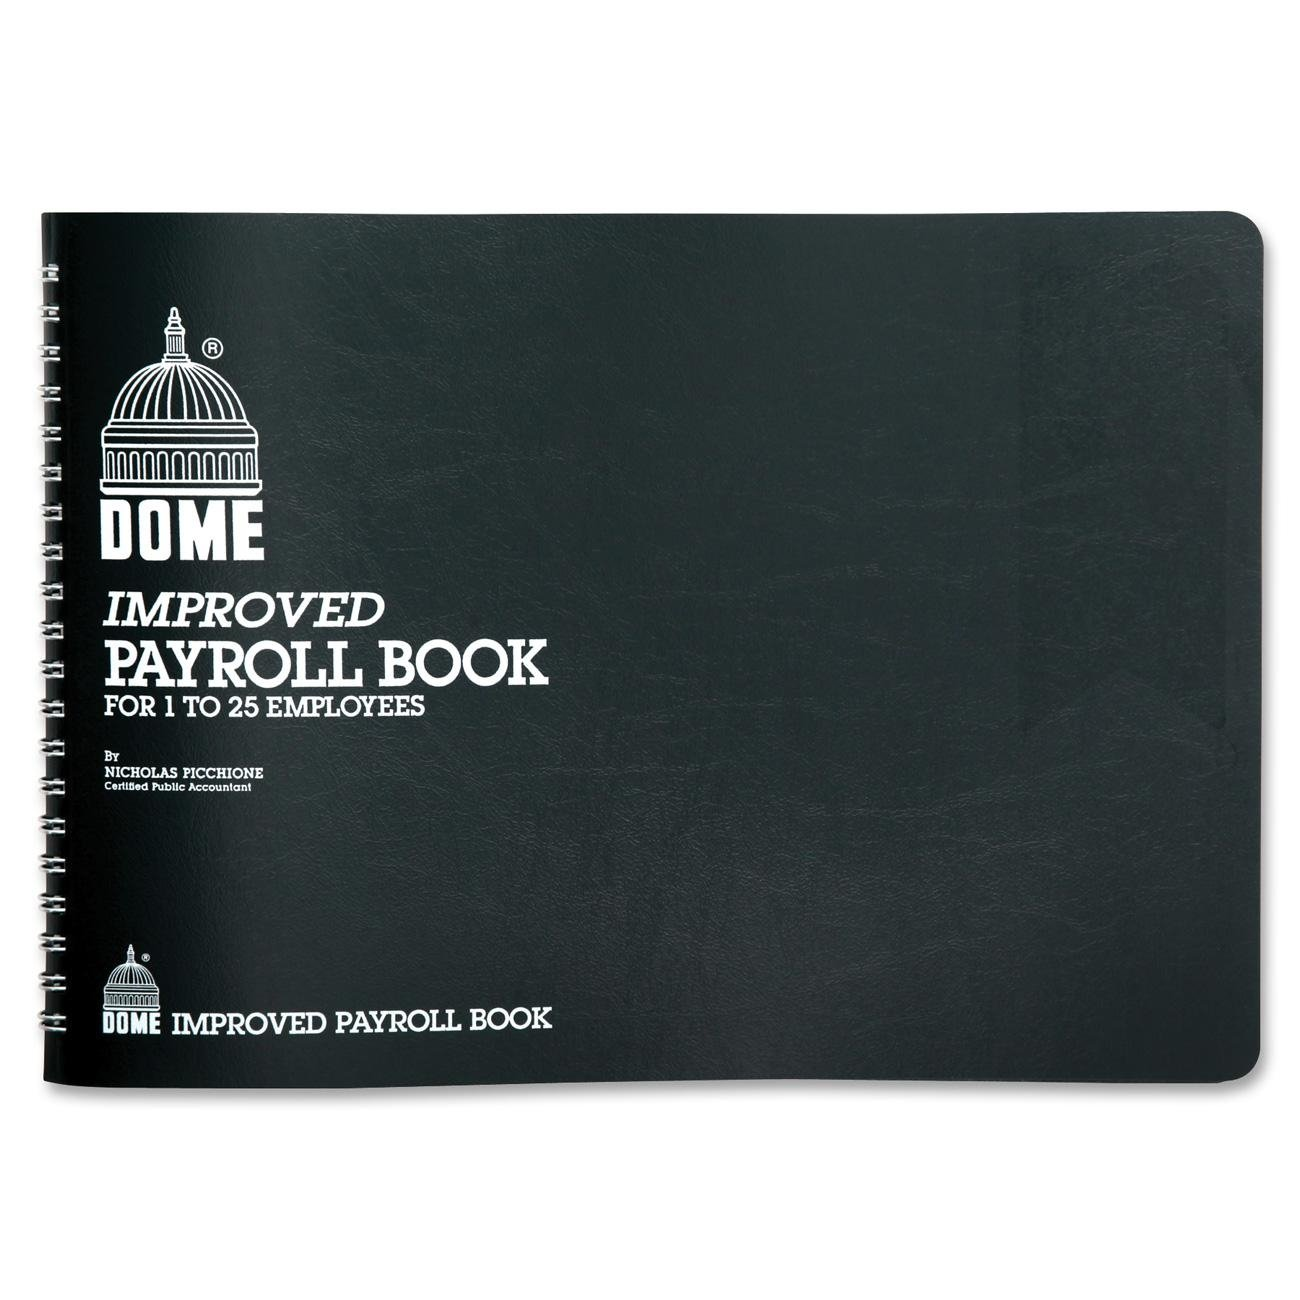 Dome Publishing Company, Inc. : Payroll Books, 1-25 Employees, 10''x6-1/2'', Green -:- Sold as 2 Packs of - 1 - / - Total of 2 Each